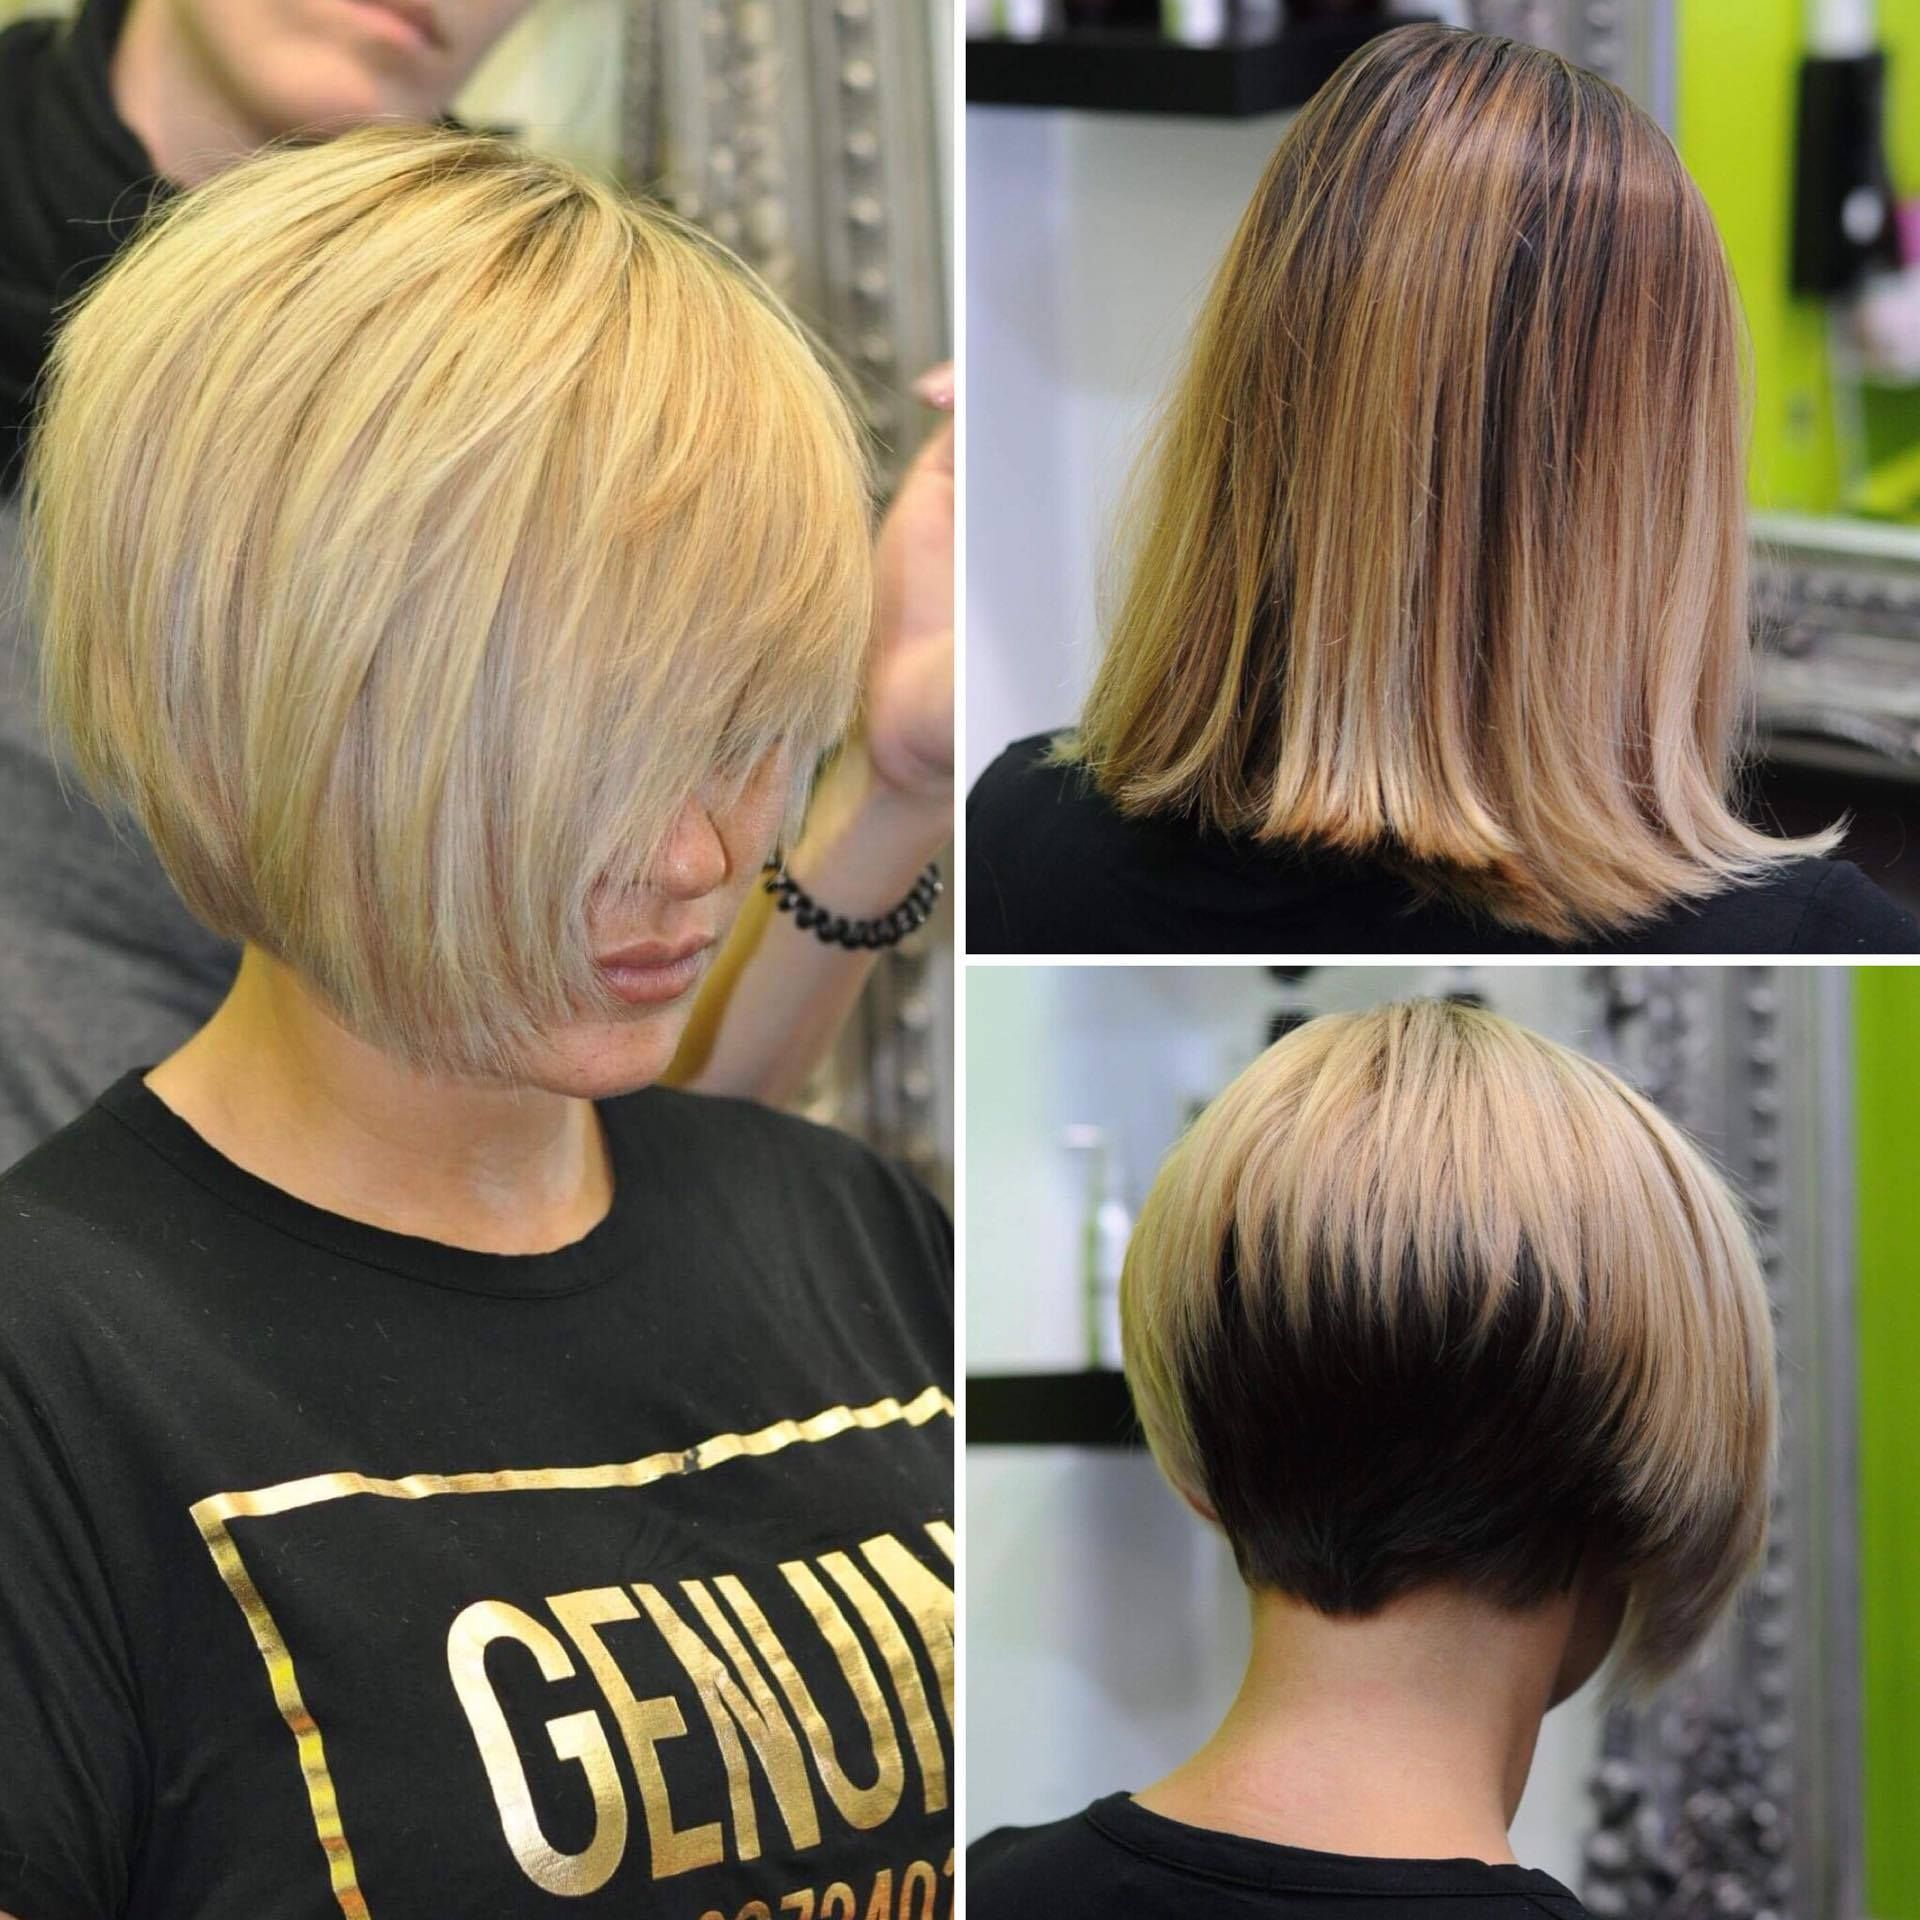 Transformation. From long bob to a 2-tone sexy short